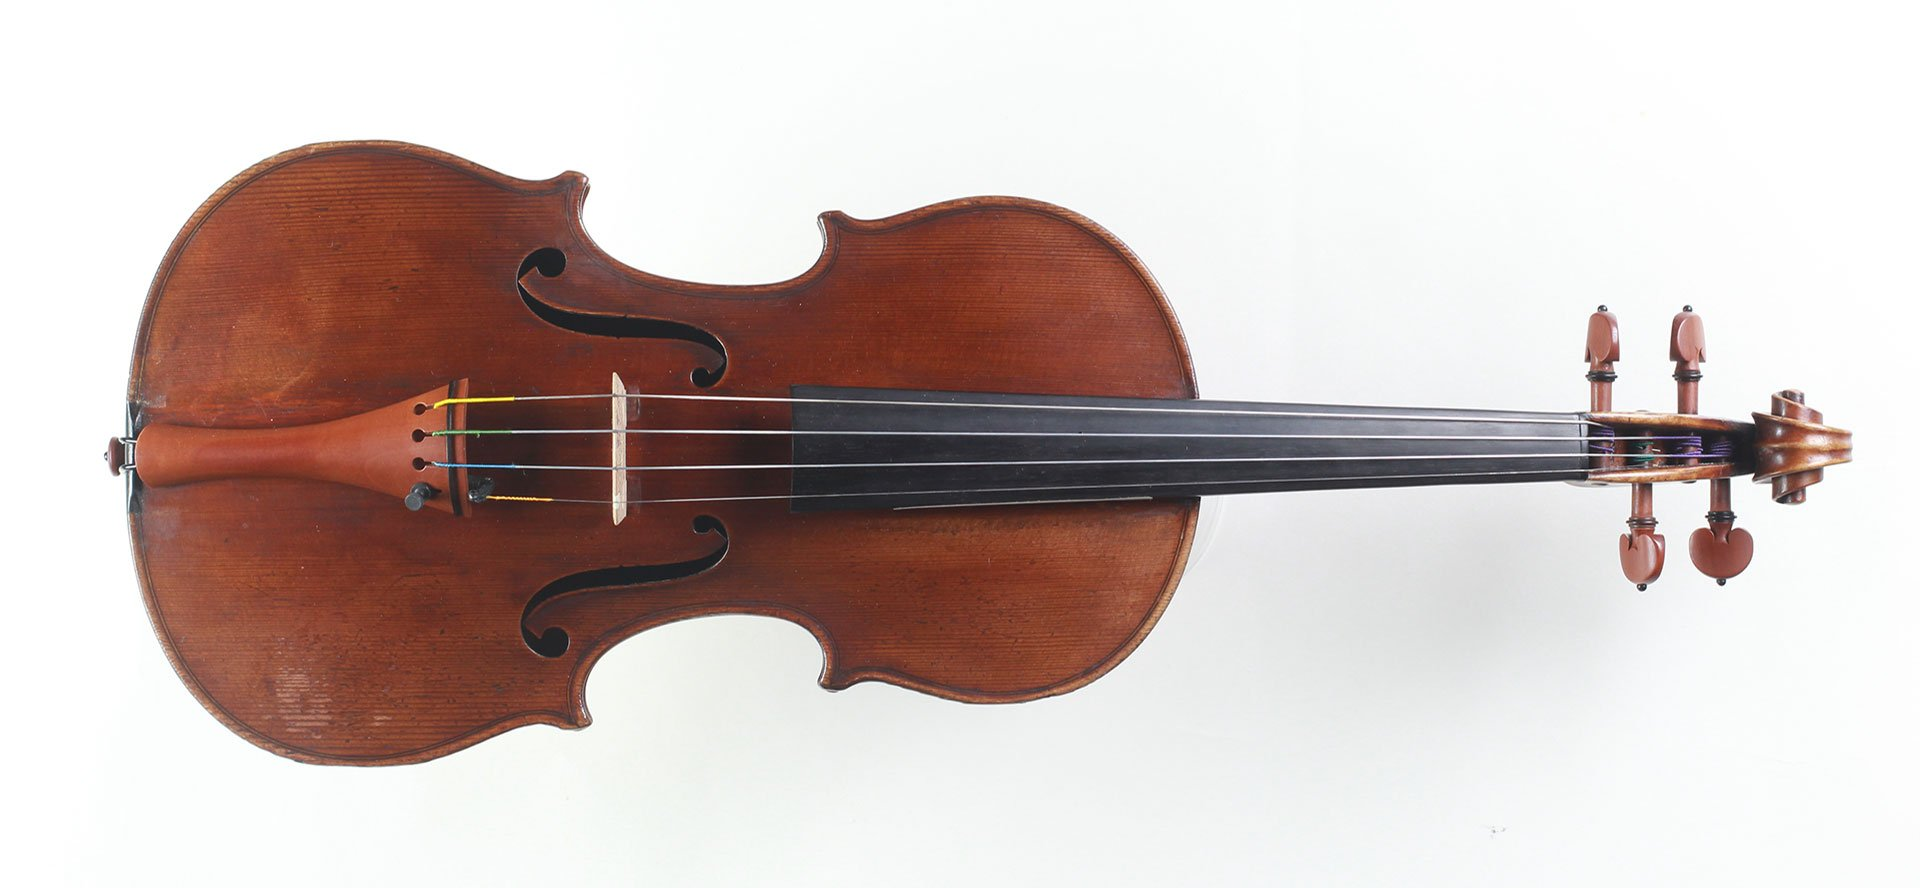 how to tell if an instrument is a viola